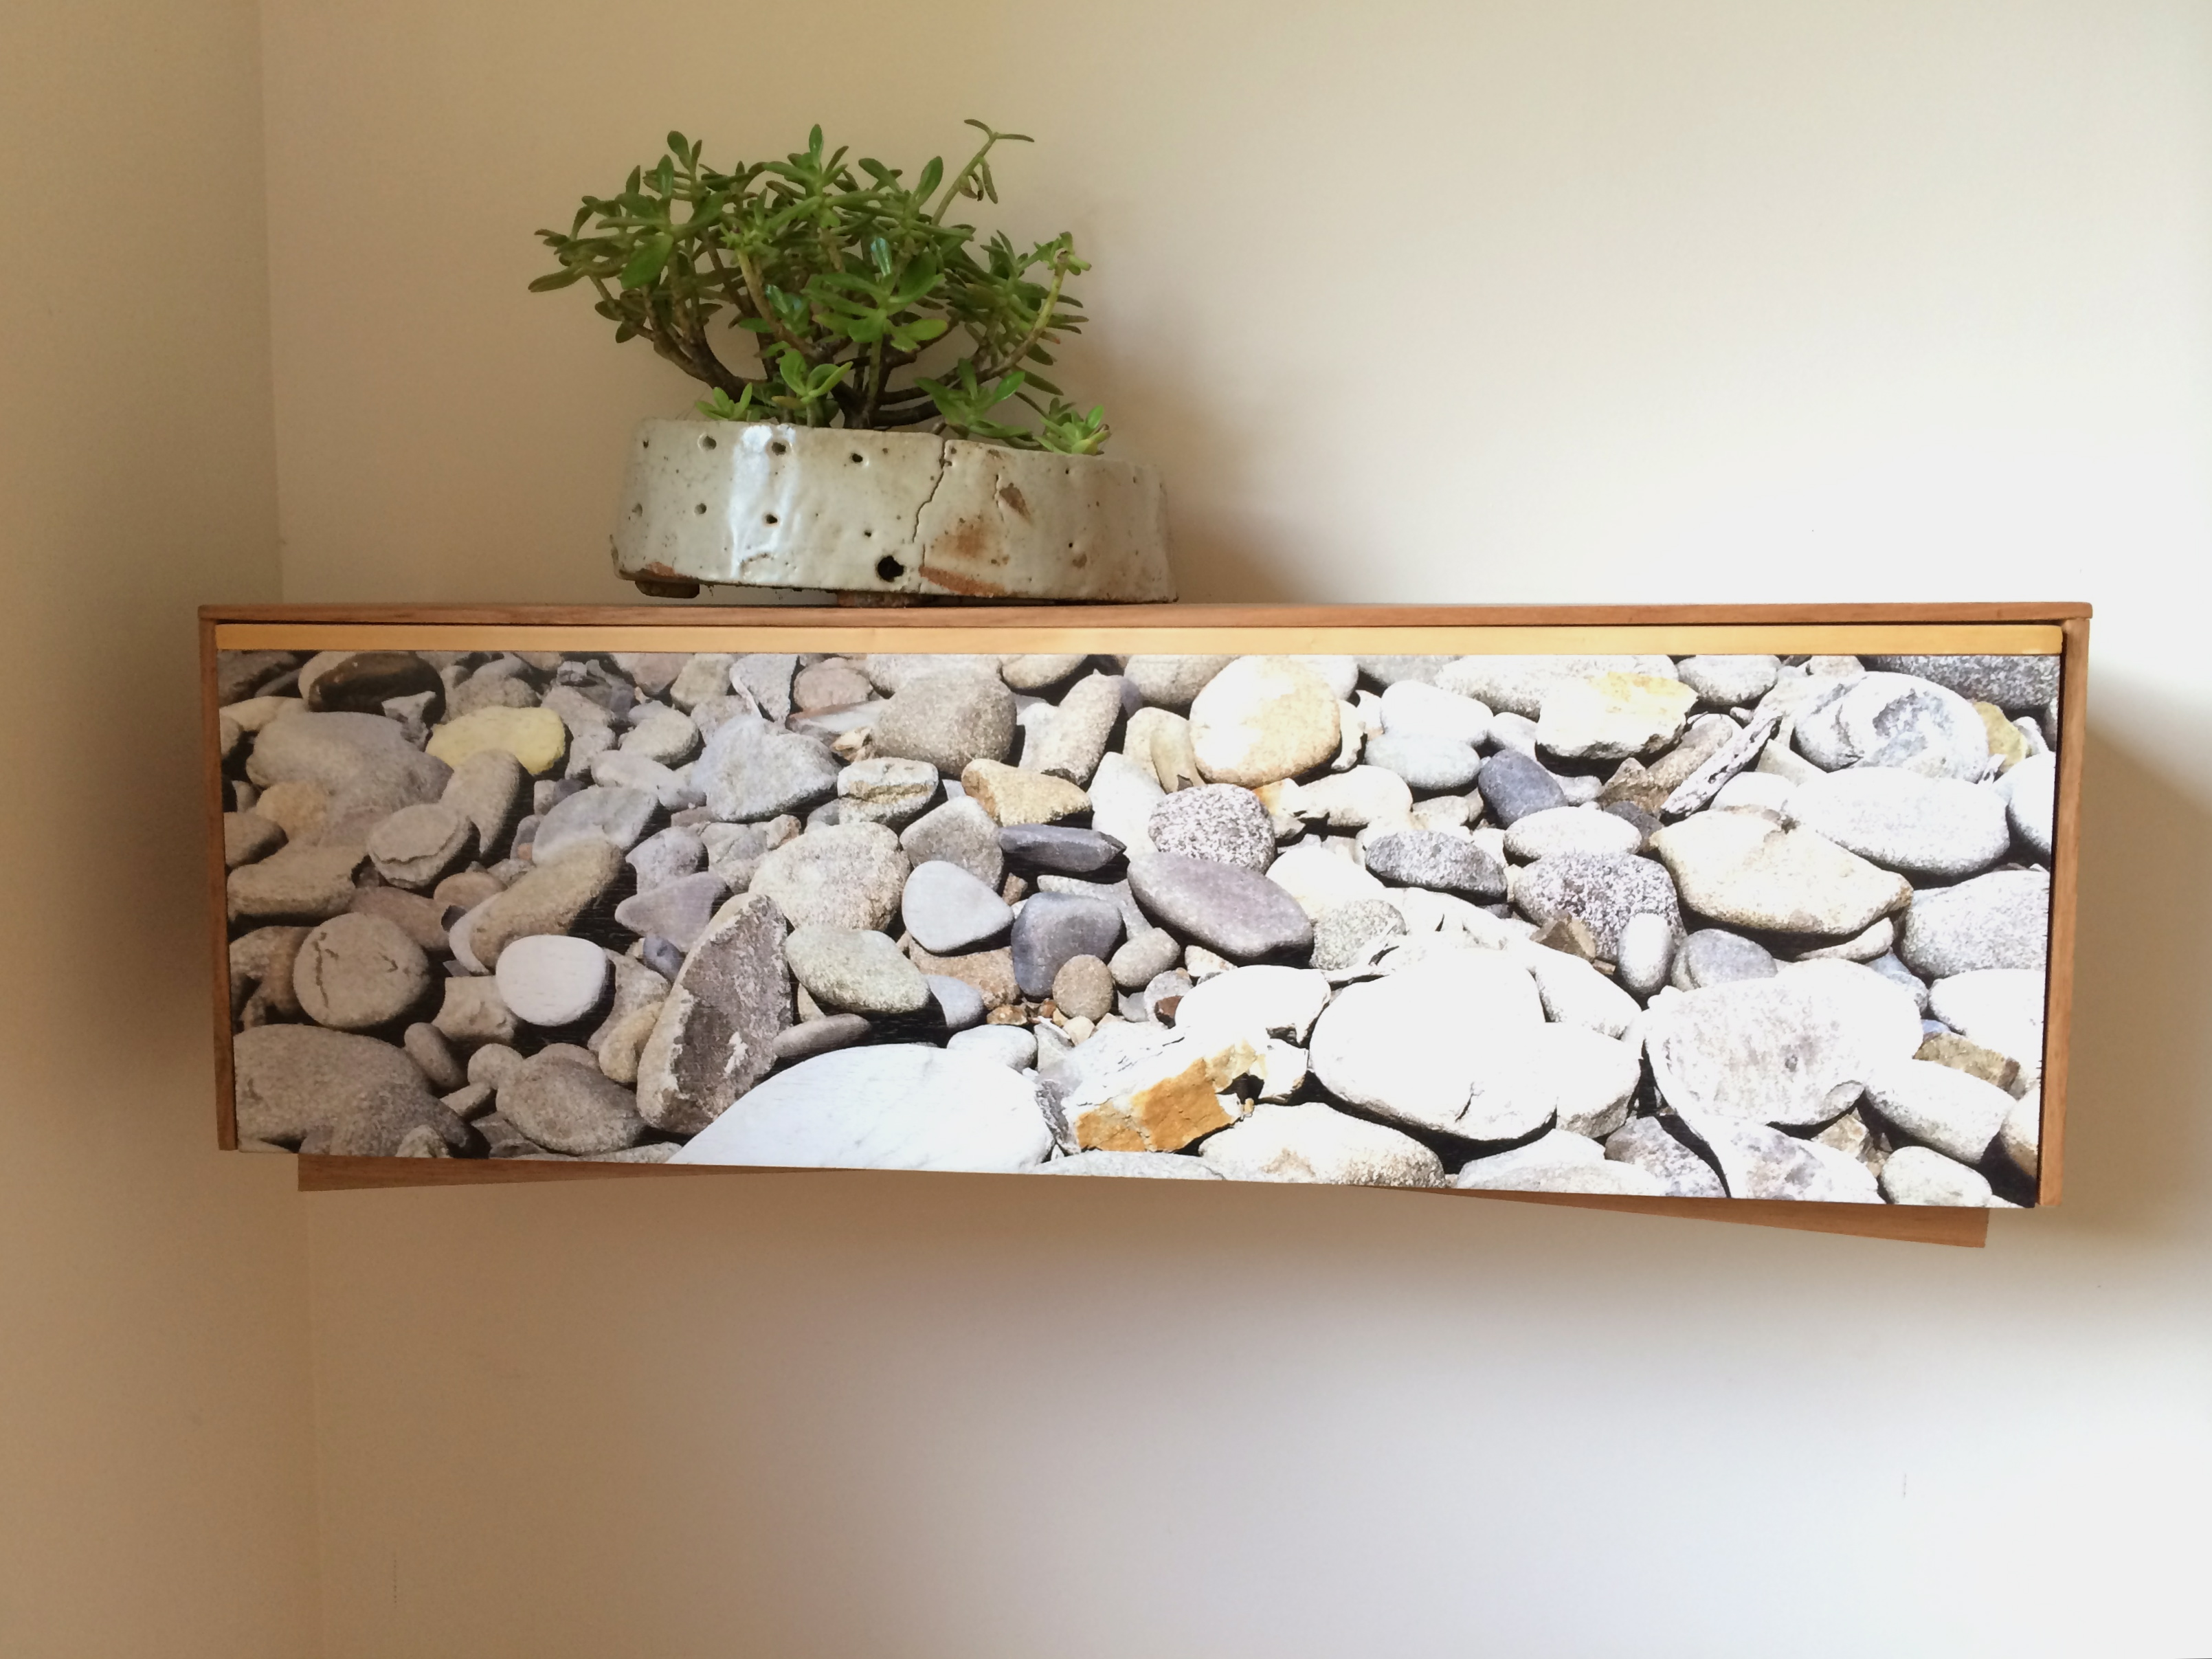 Floating Desk - Rocks